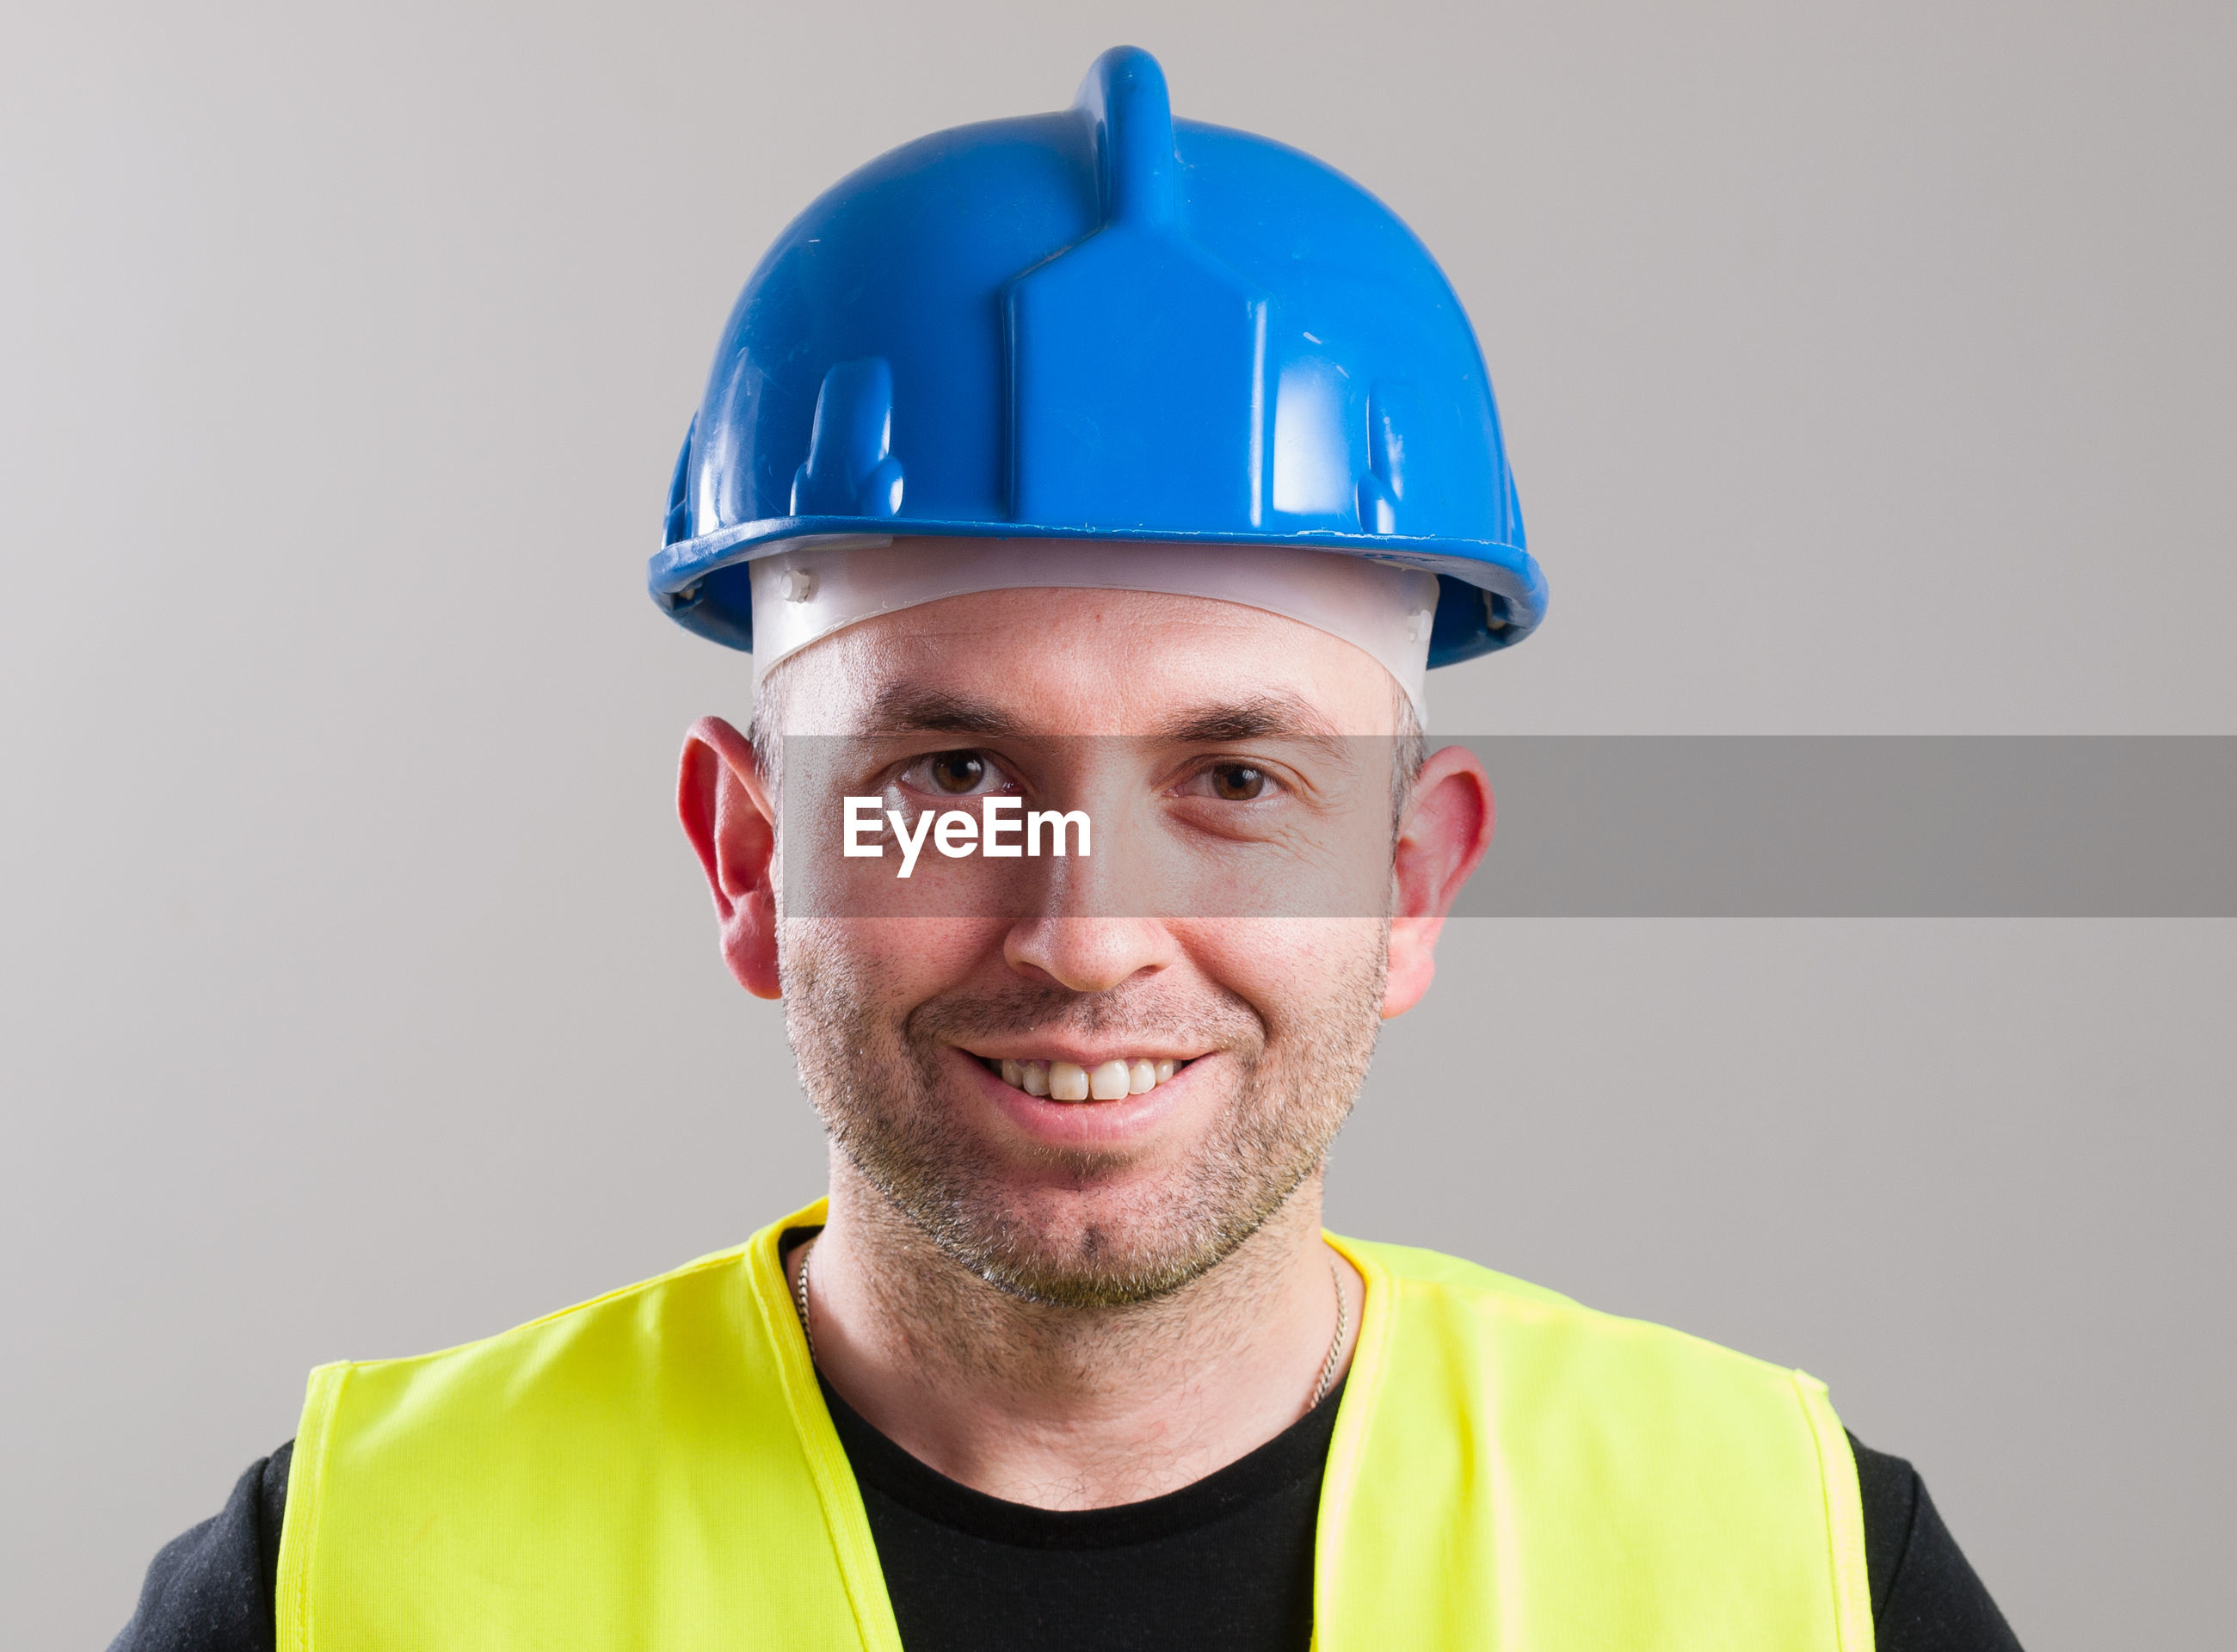 Portrait of smiling construction worker against gray background